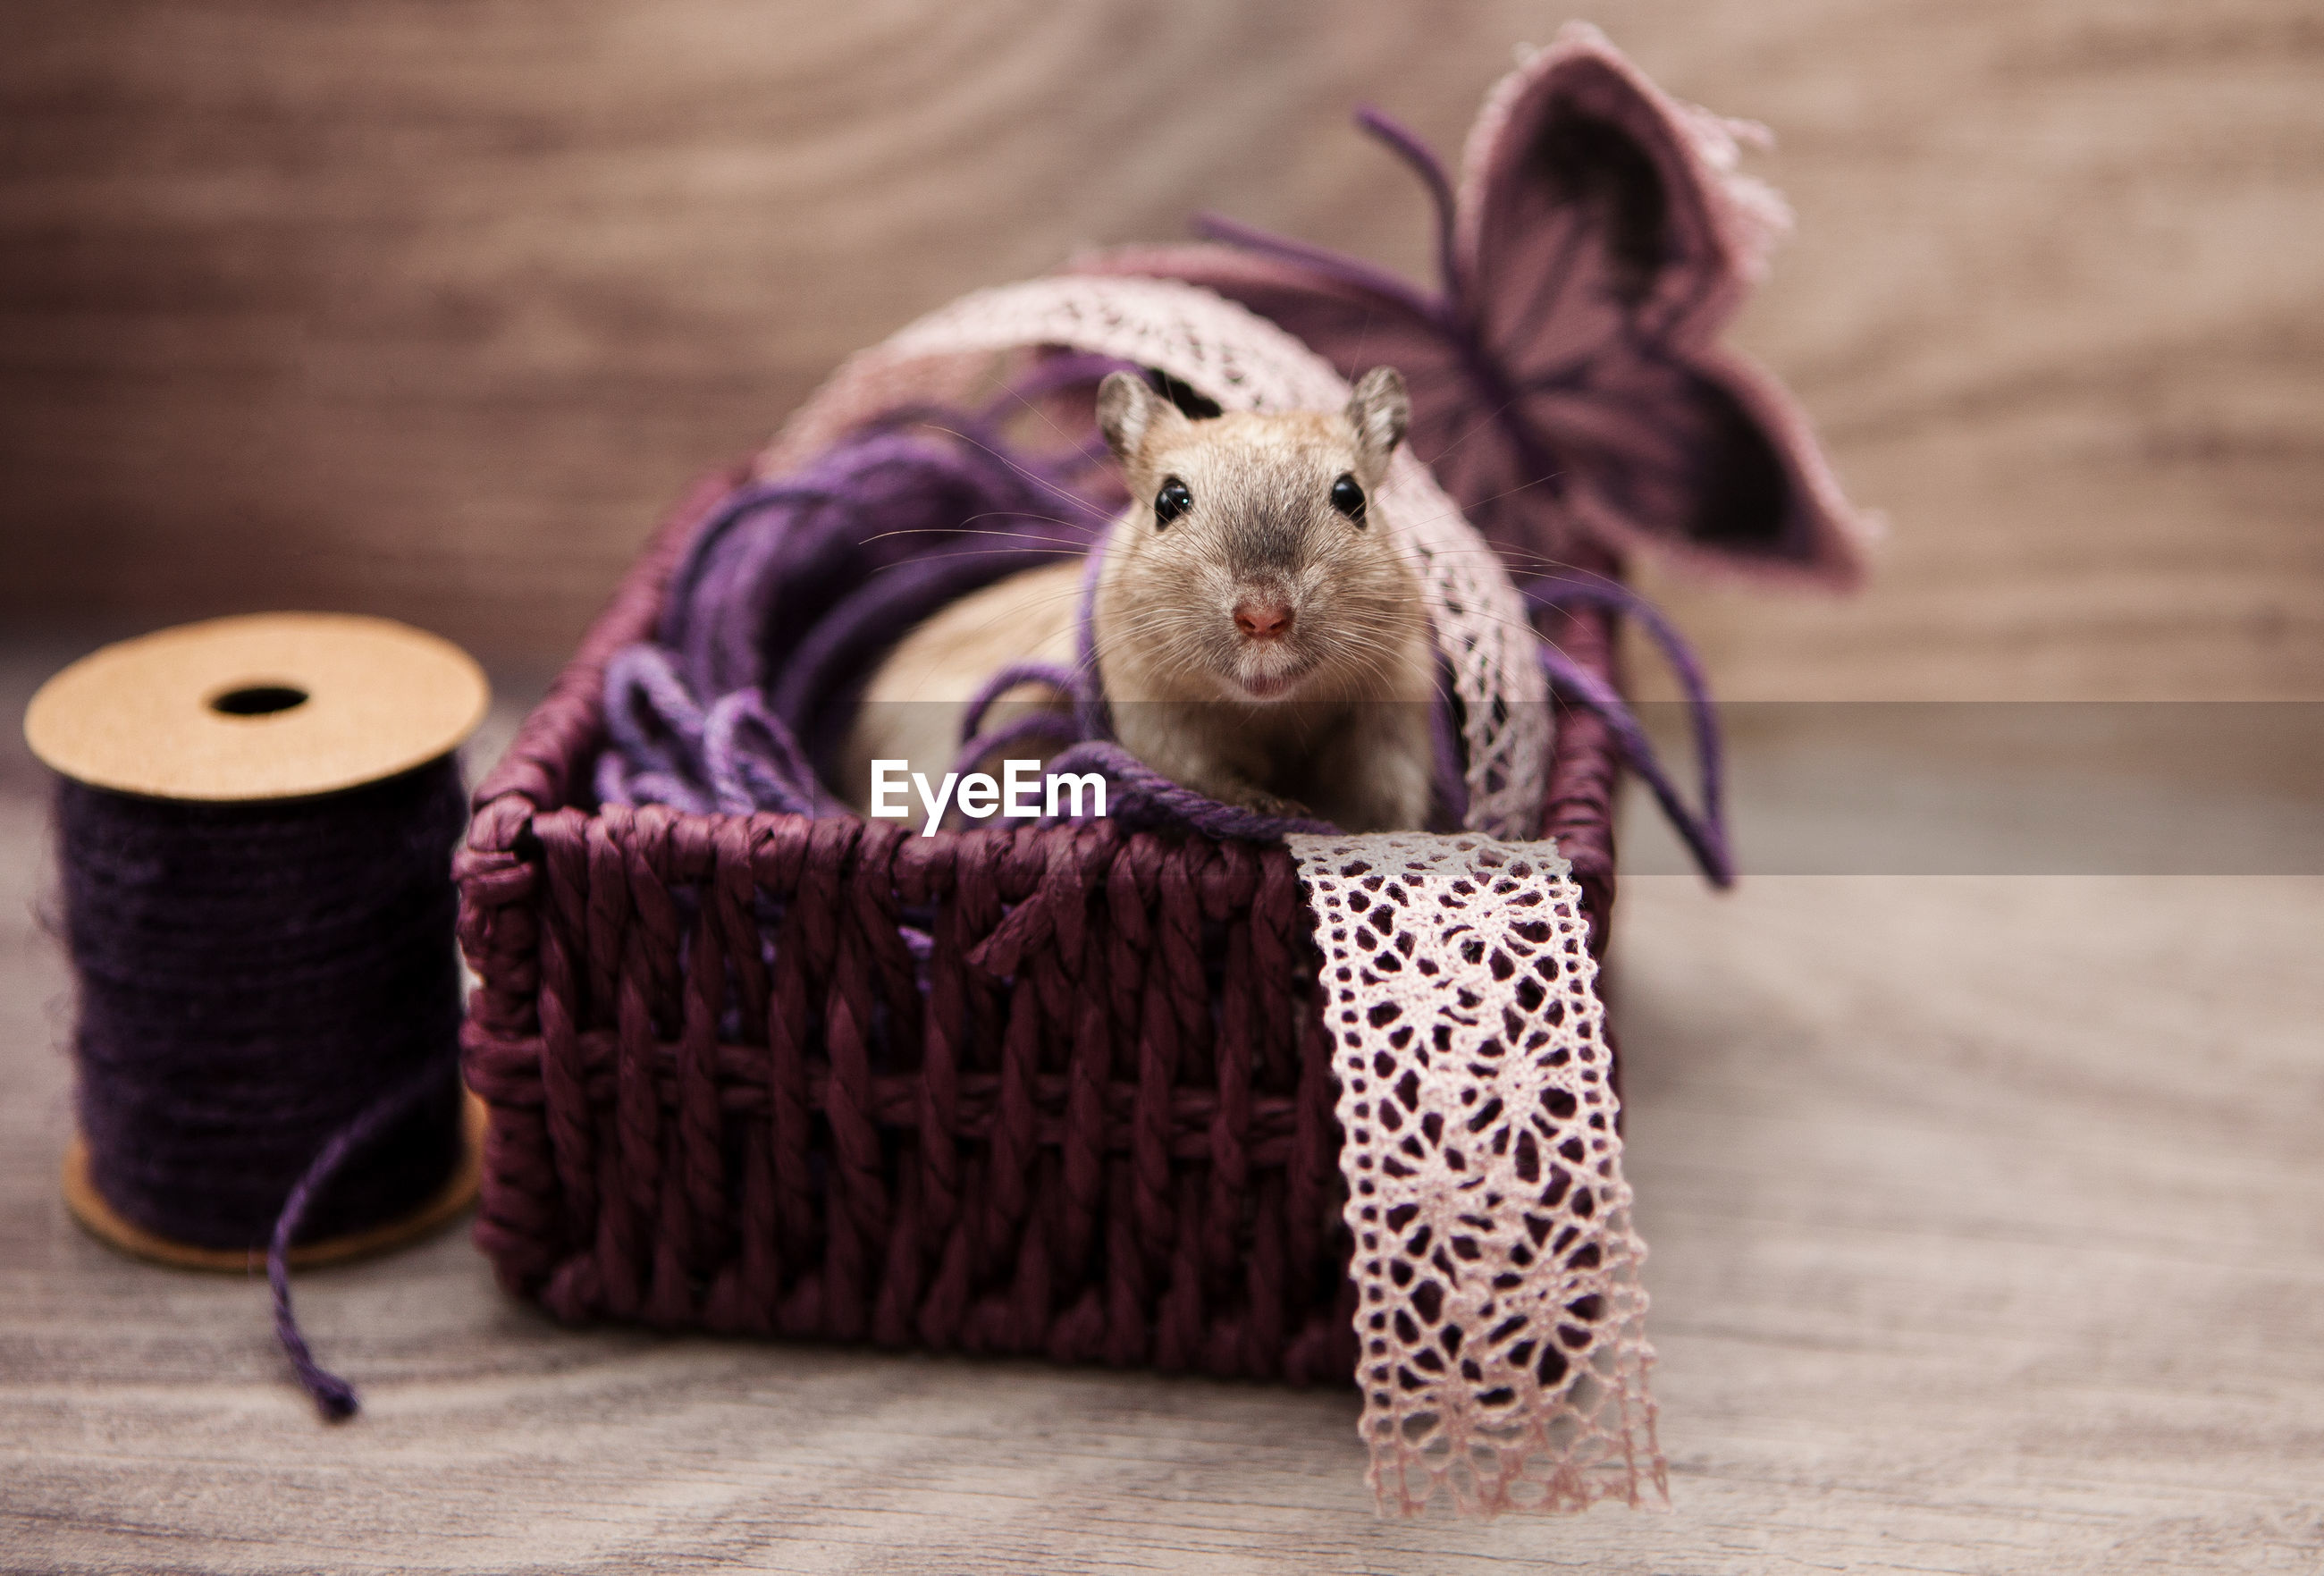 Close-up of rat in sewing basket